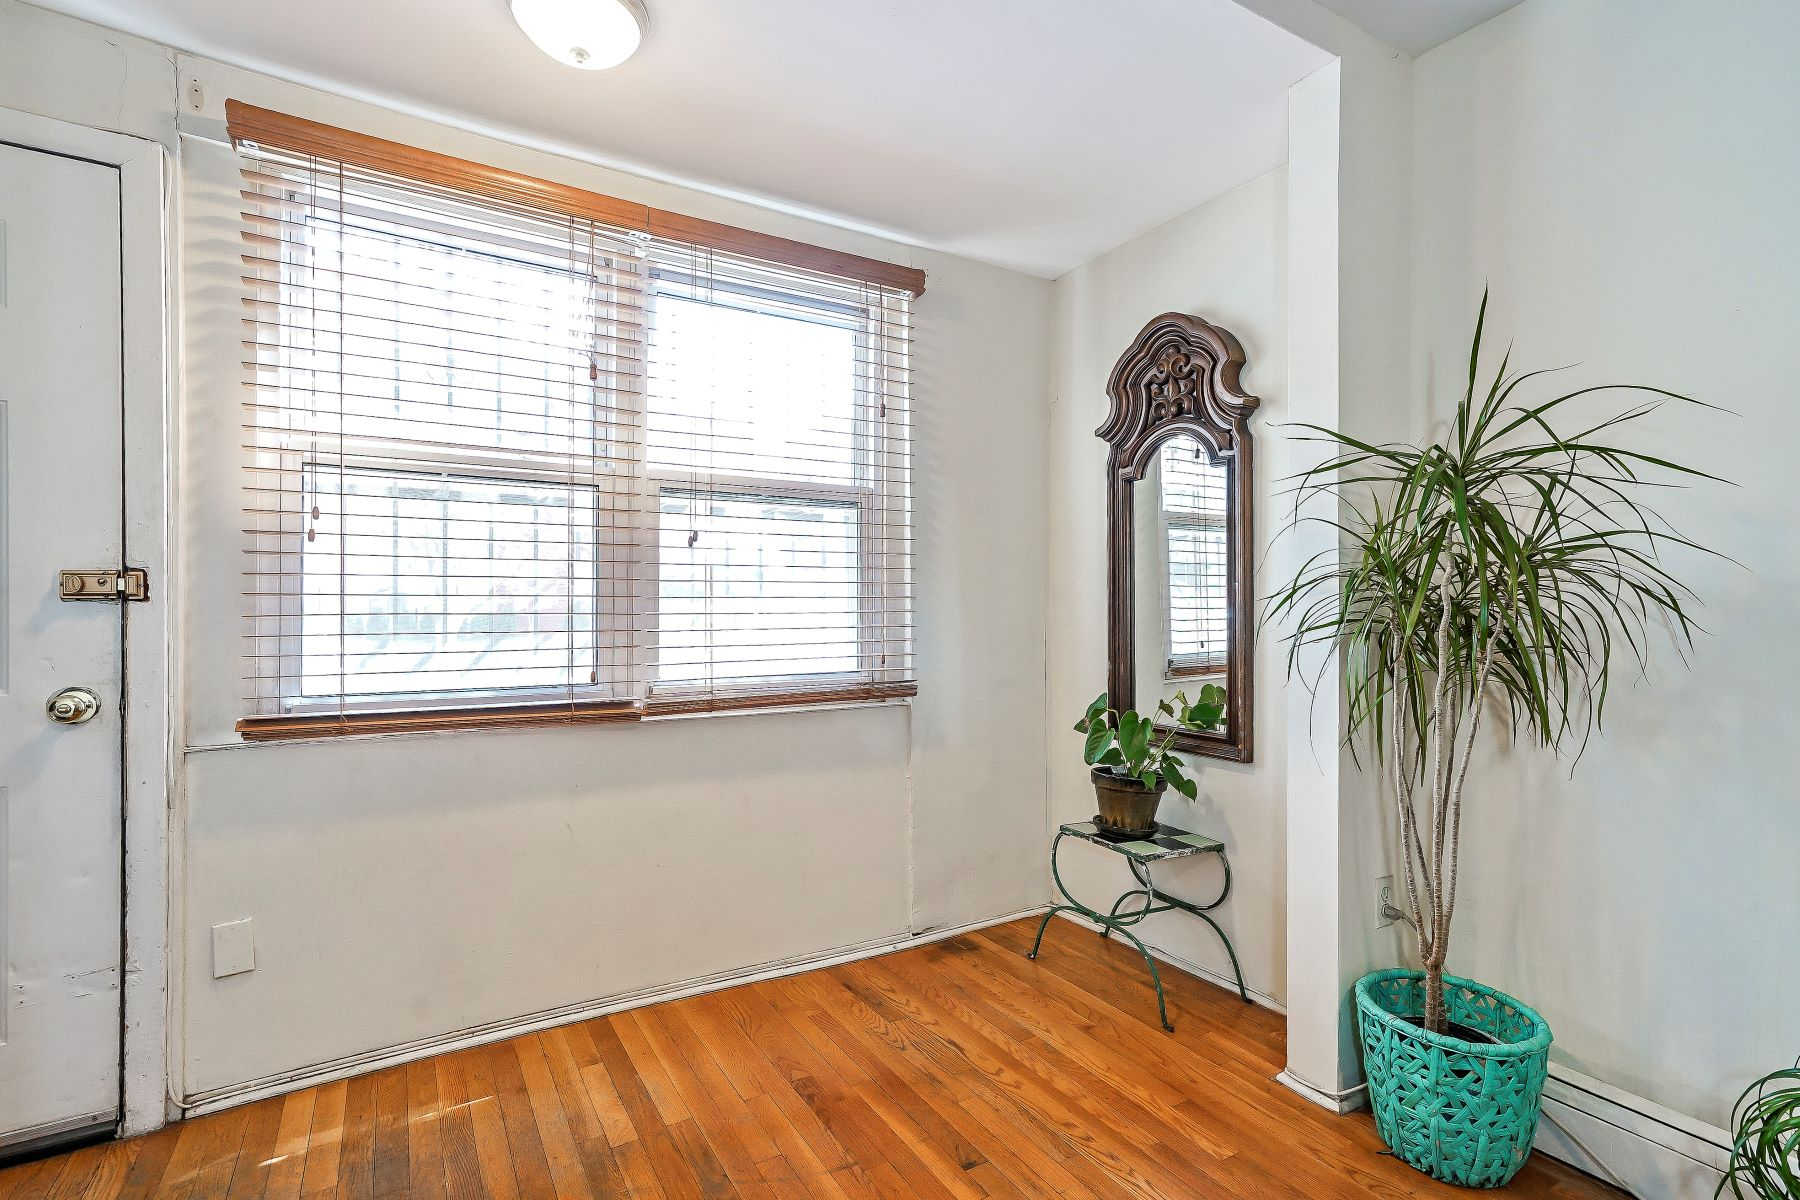 Additional photo for property listing at 114 Underhill Avenue  Brooklyn, New York 11238 United States